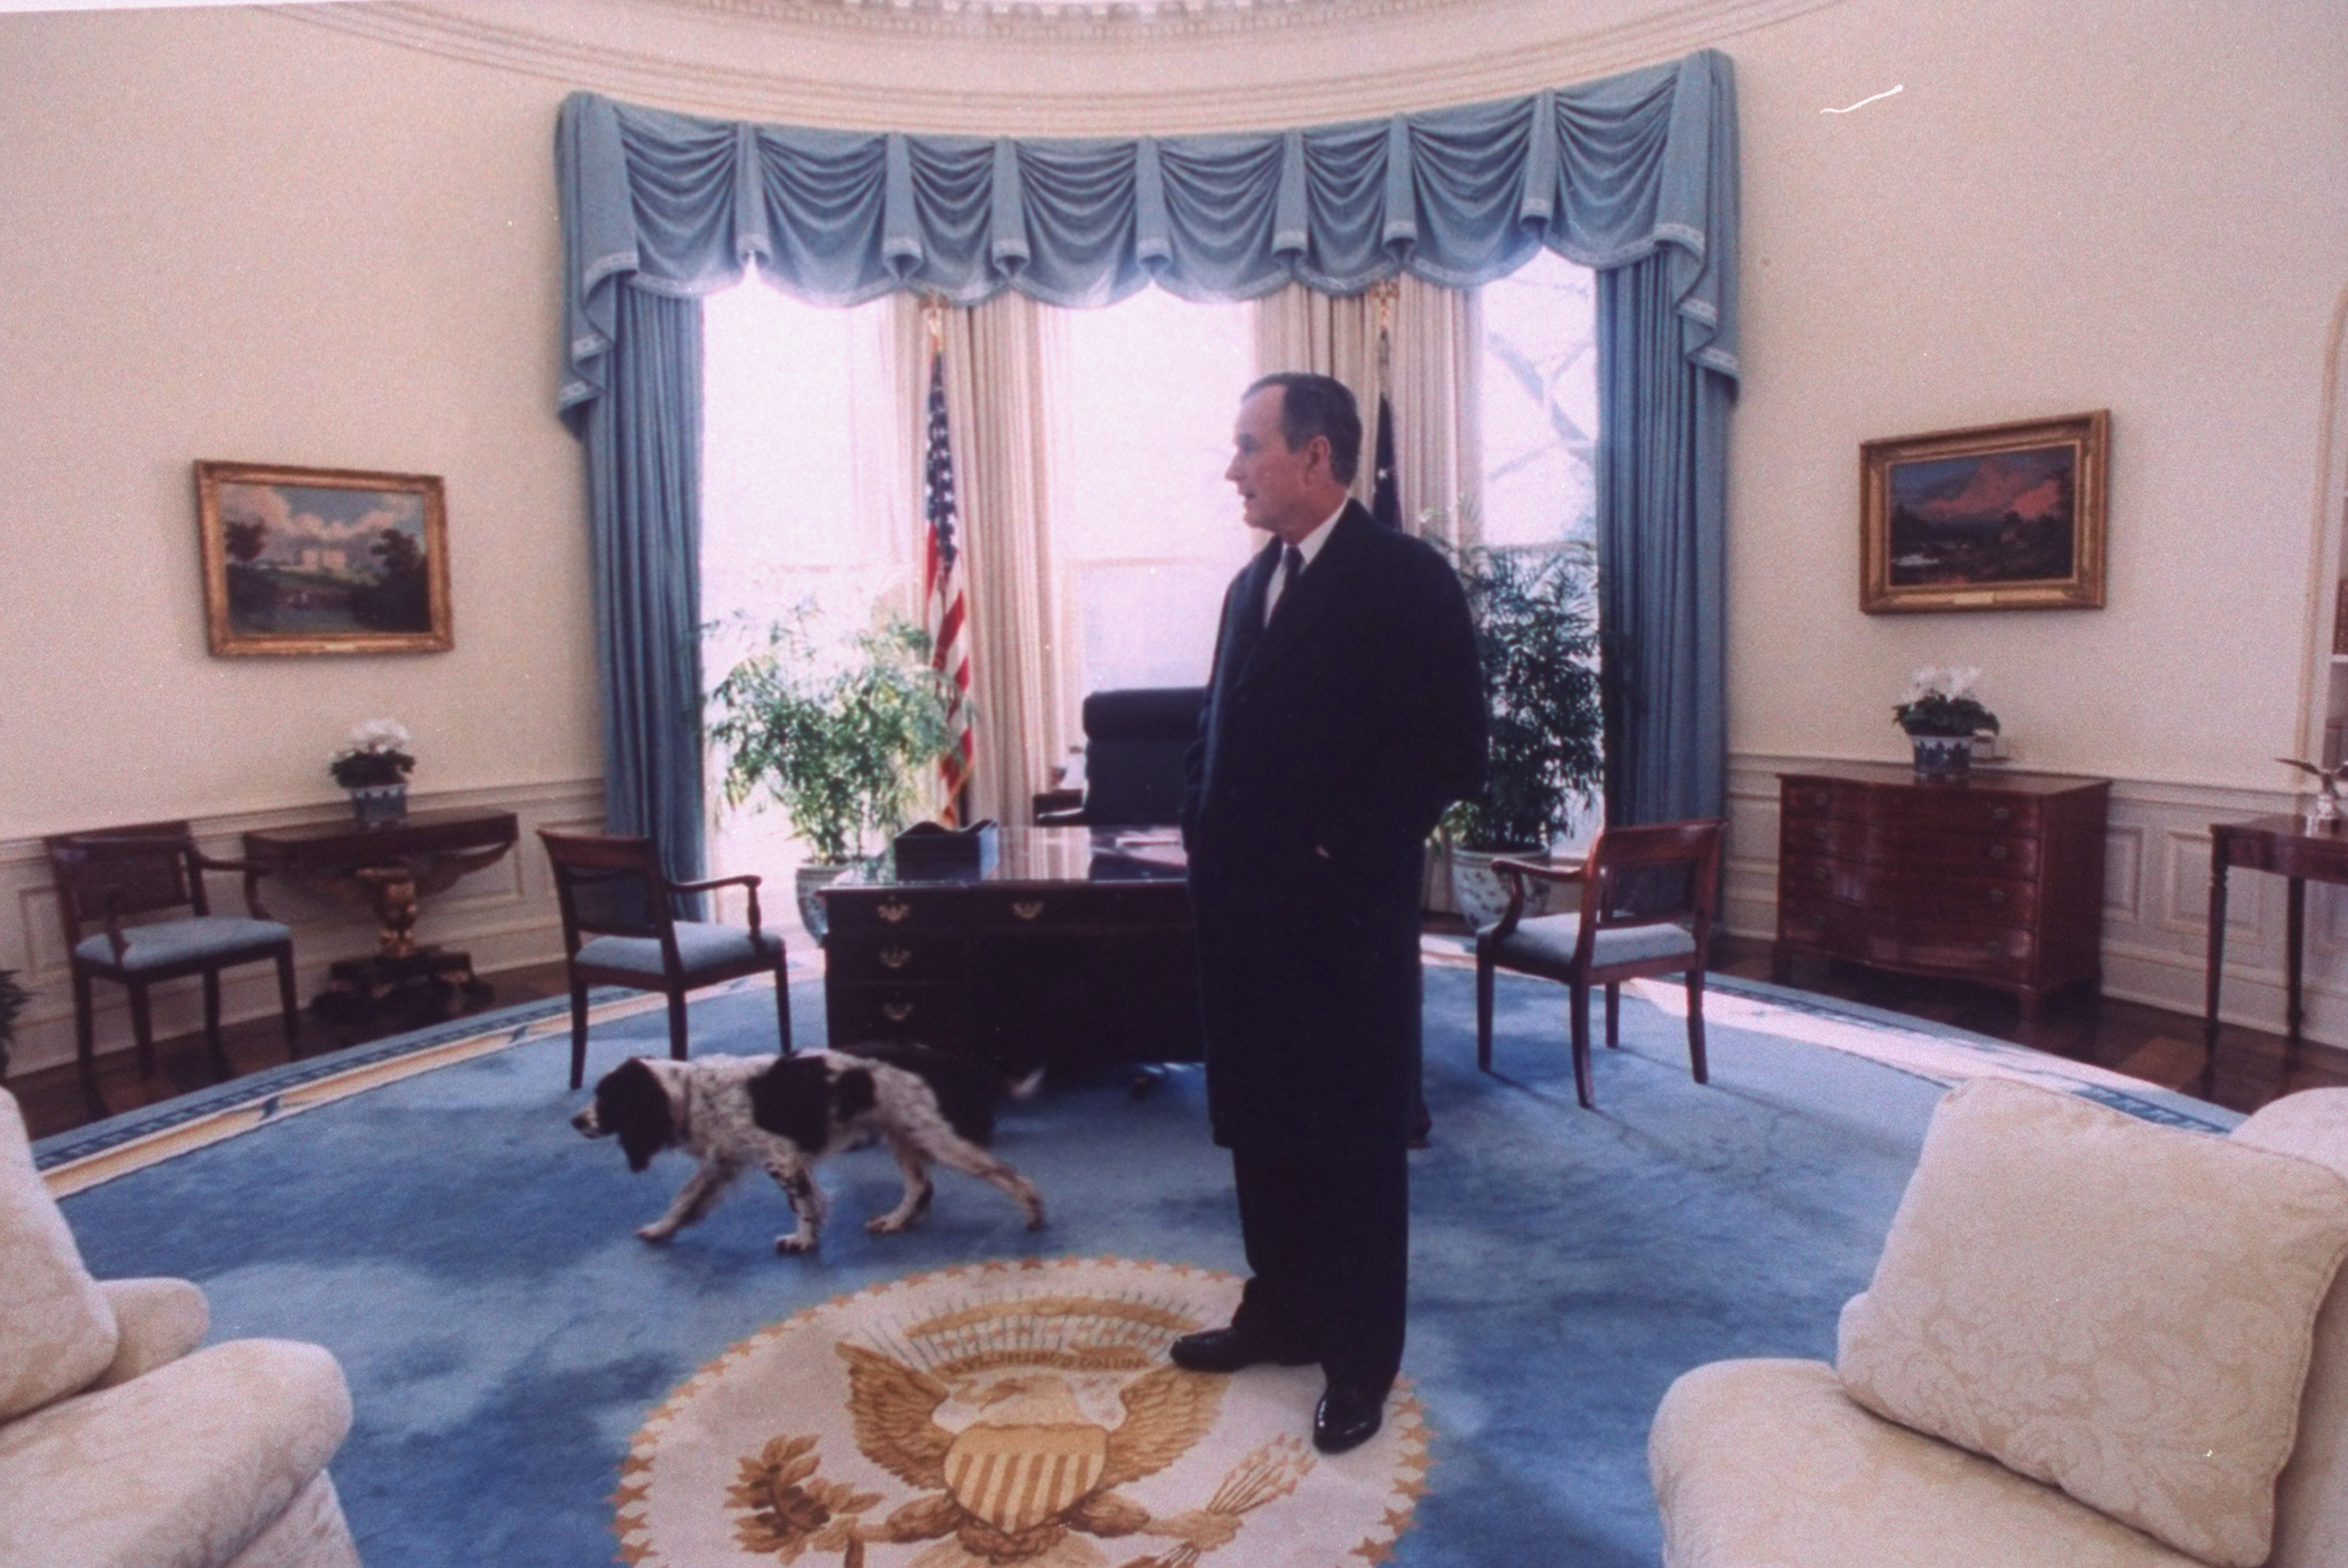 President George H.W. Bush taking a last look around the Oval Office with his dog Ranger, before vacating the White House to incoming president Bill Clinton in Washington on January 2, 1993.